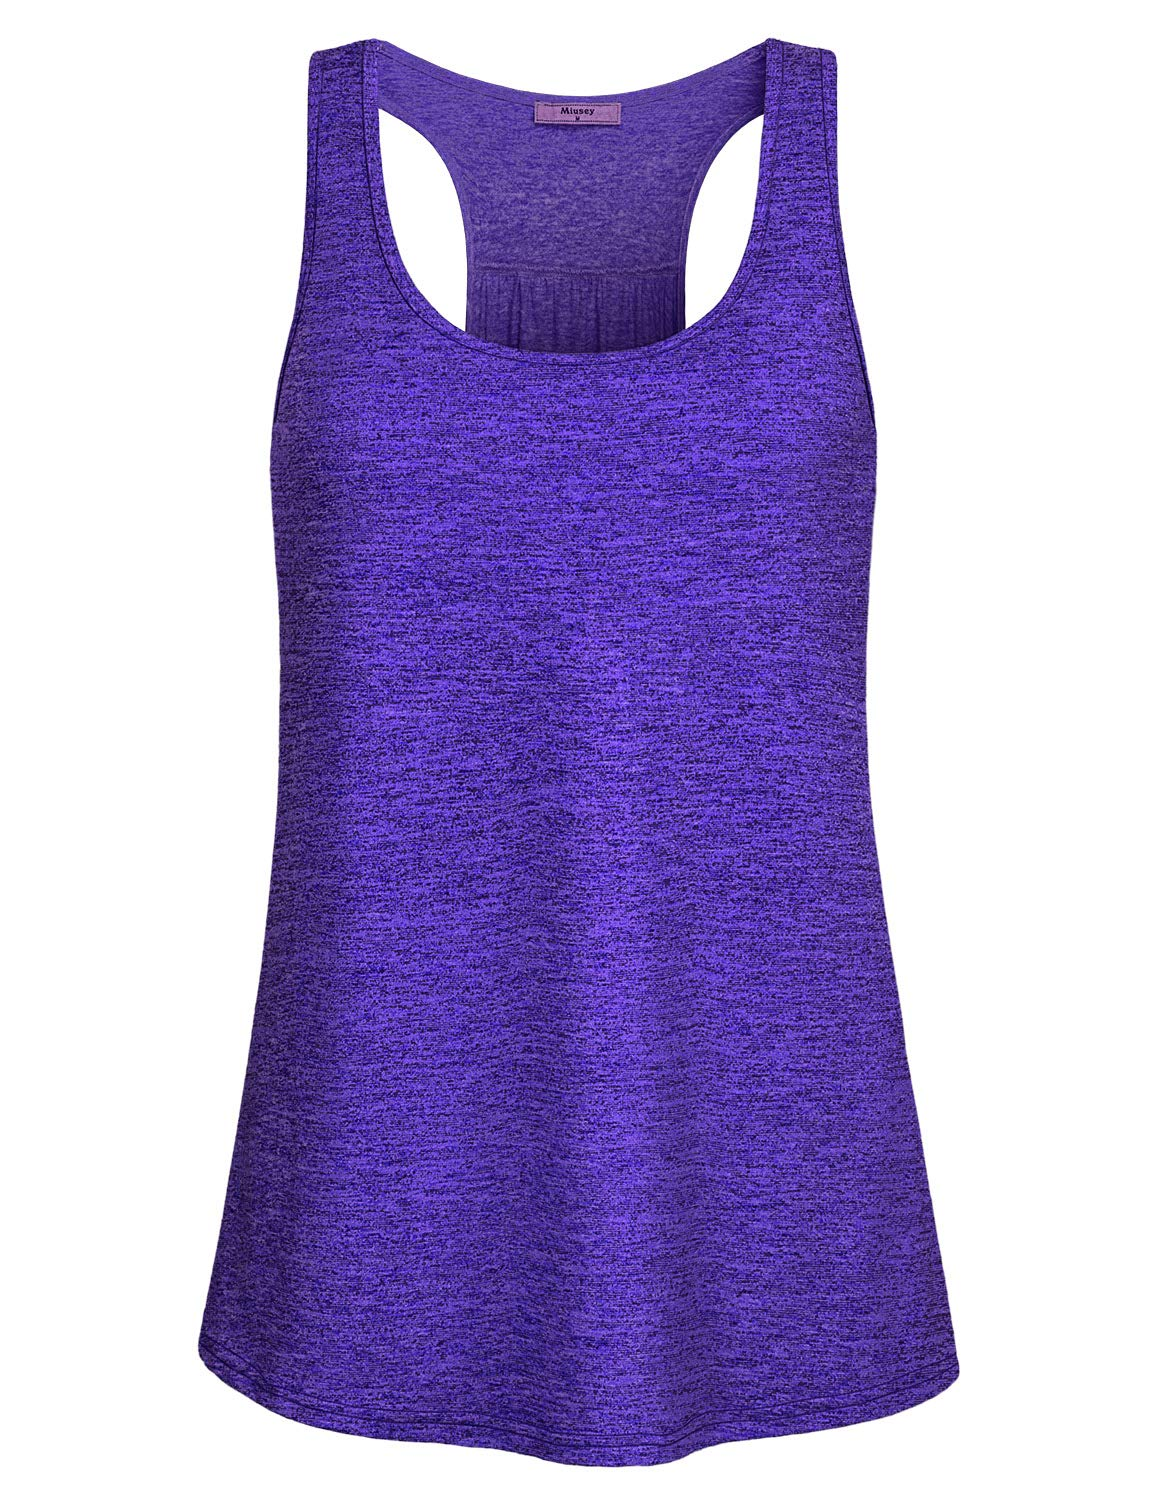 Miusey Yoga Shirts for Women,Ladies Sleeveless Tank Tunic Tops Petite Workout Gym Soft Sport Wear Running Round Neck Cool Activewear Quick Dry Compression Under Outfit for Athlete Blue M